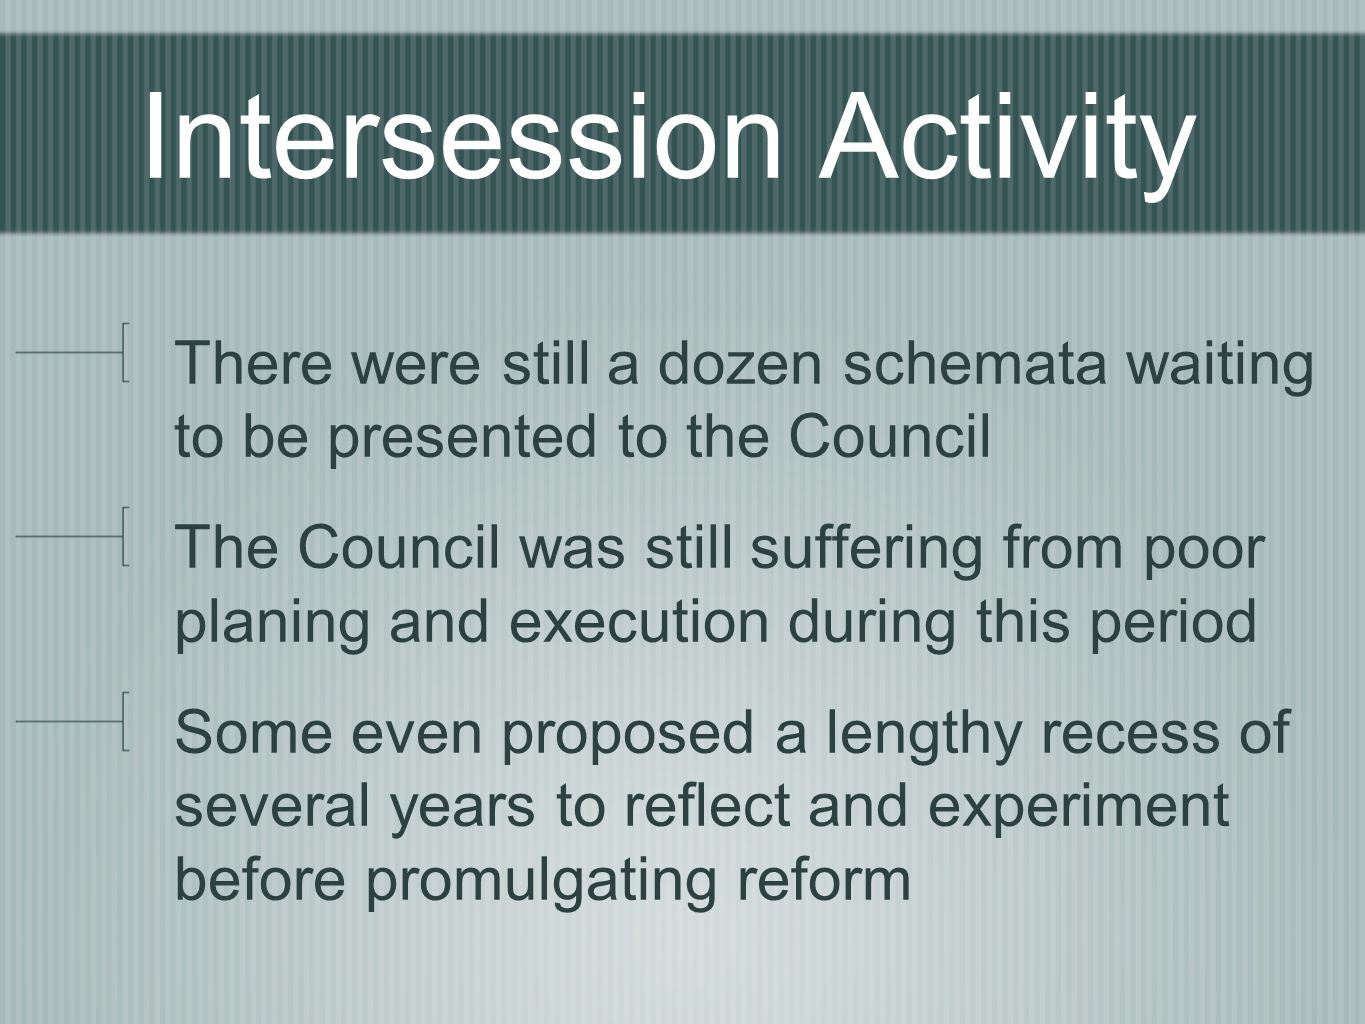 Intersession Activity There were still a dozen schemata waiting to be presented to the Council The Council was still suffering from poor planing and execution during this period Some even proposed a lengthy recess of several years to reflect and experiment before promulgating reform